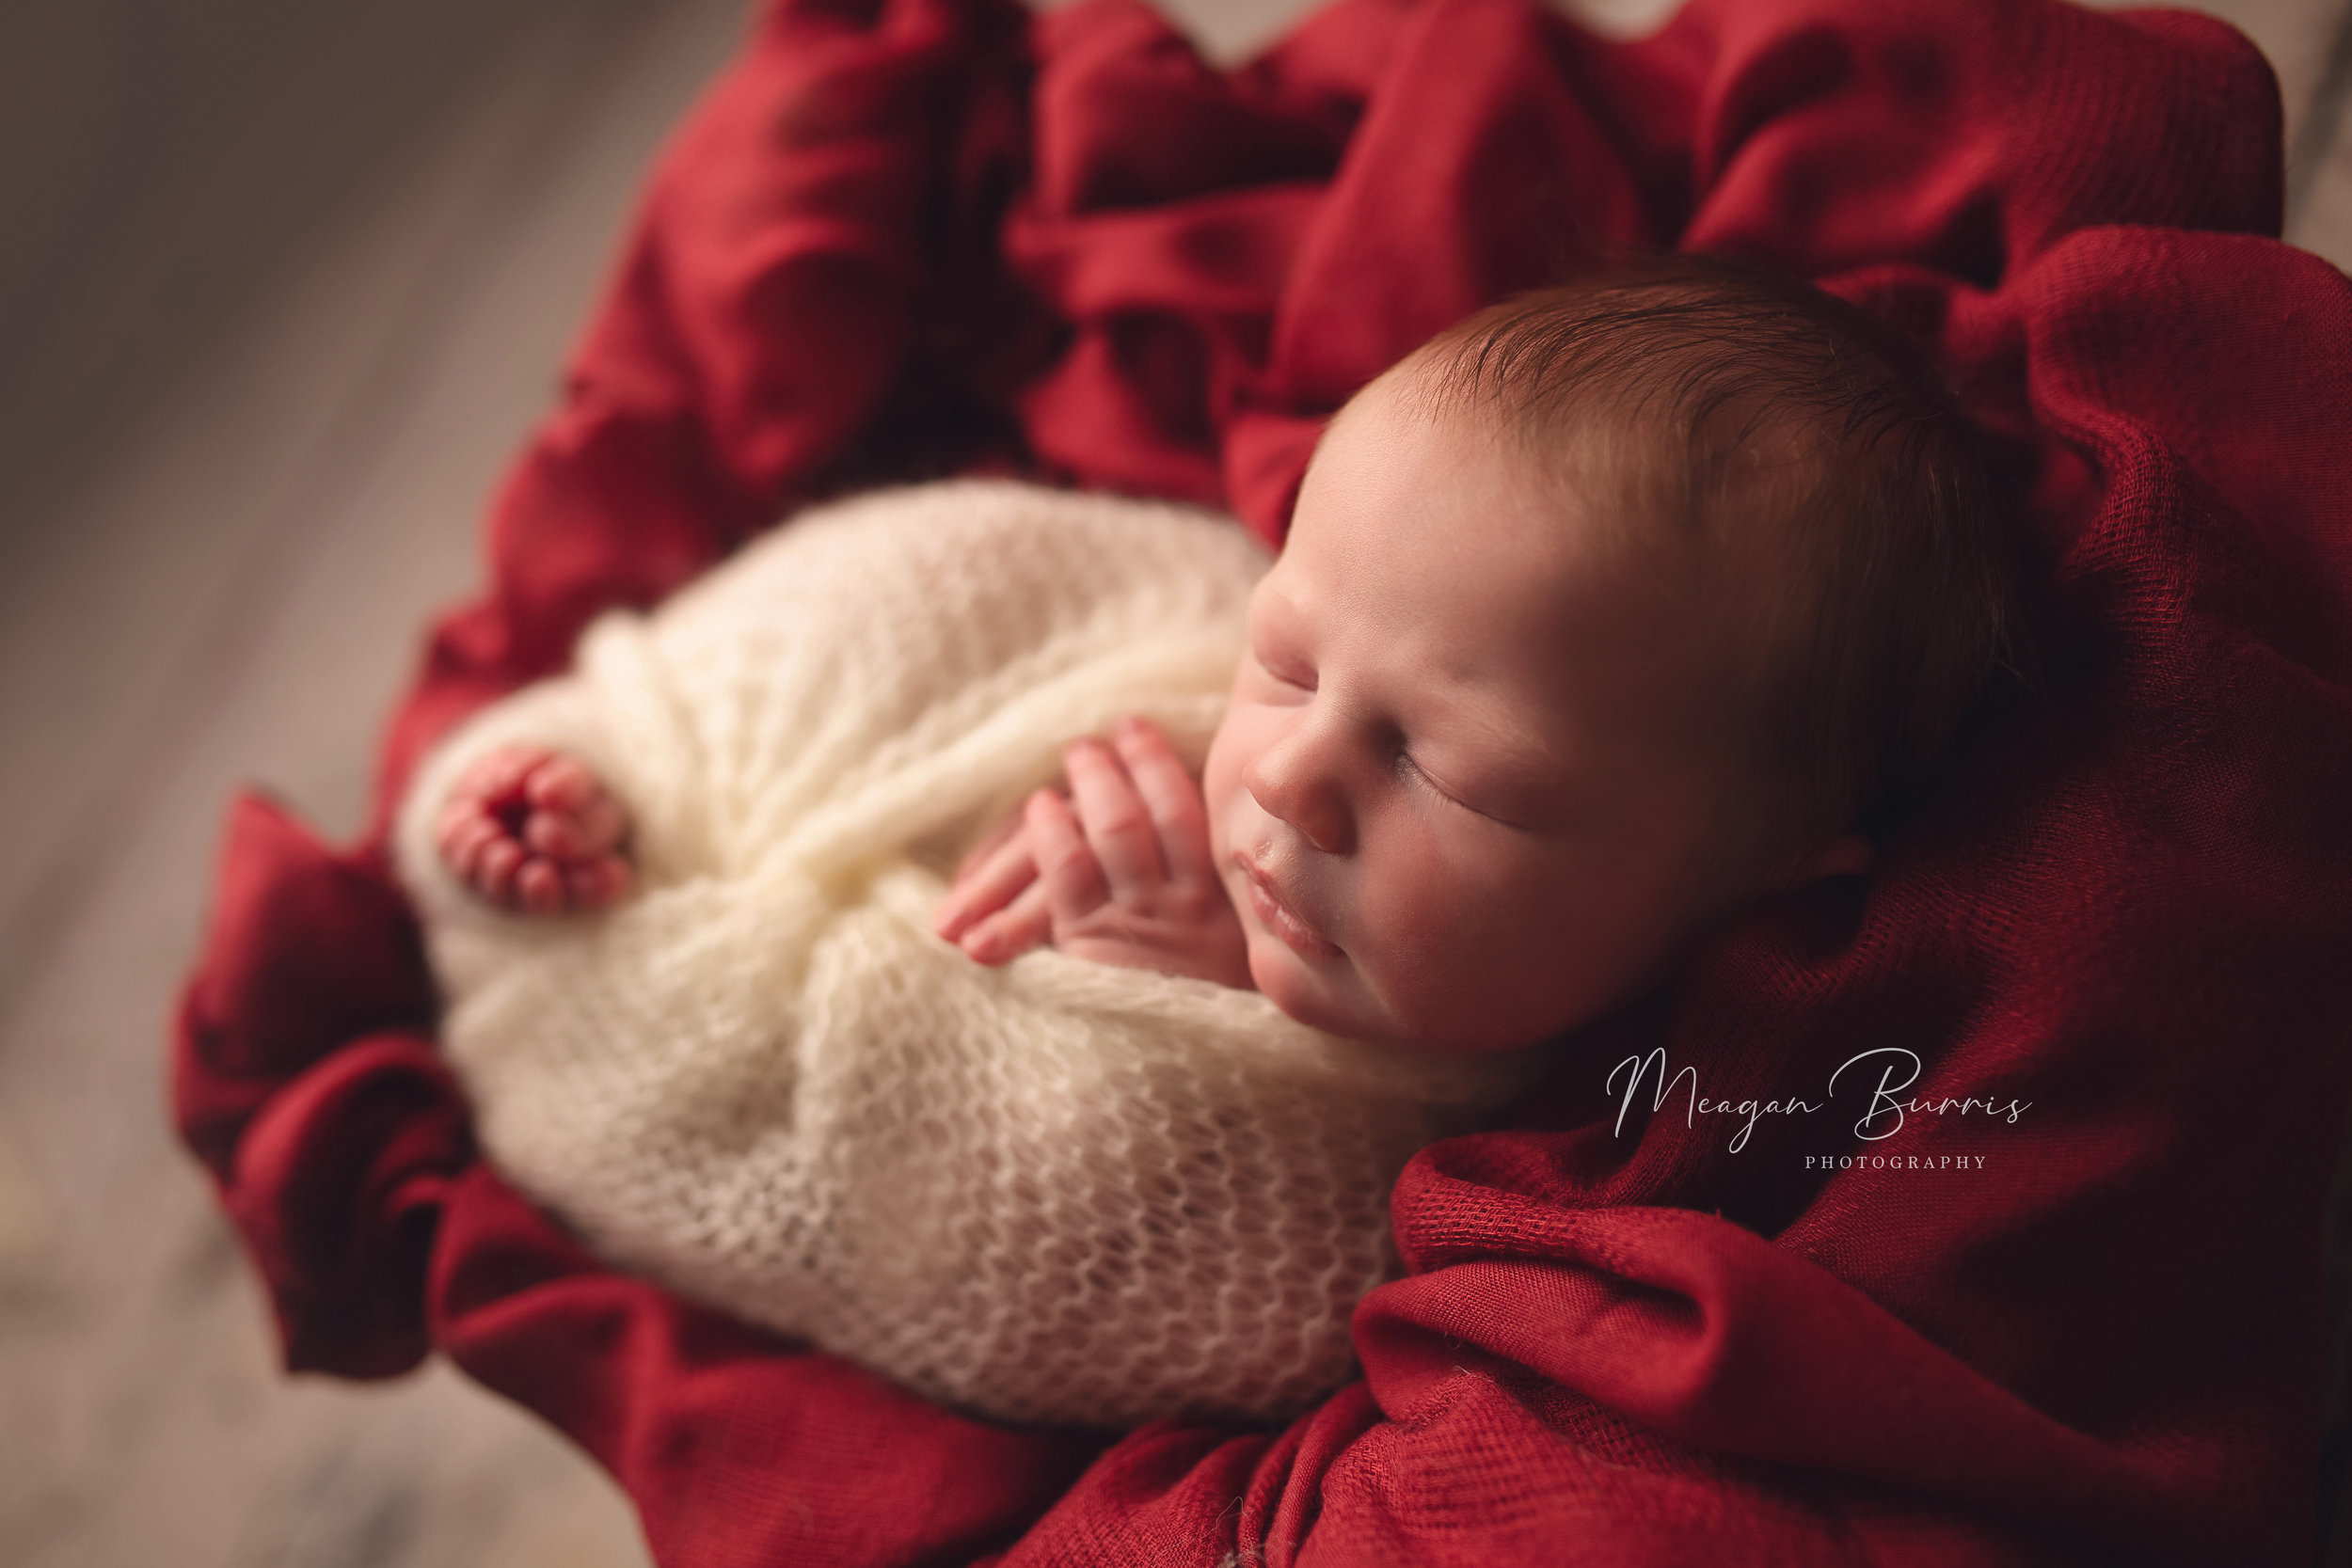 everett_fishers, in newborn photographer4.jpg